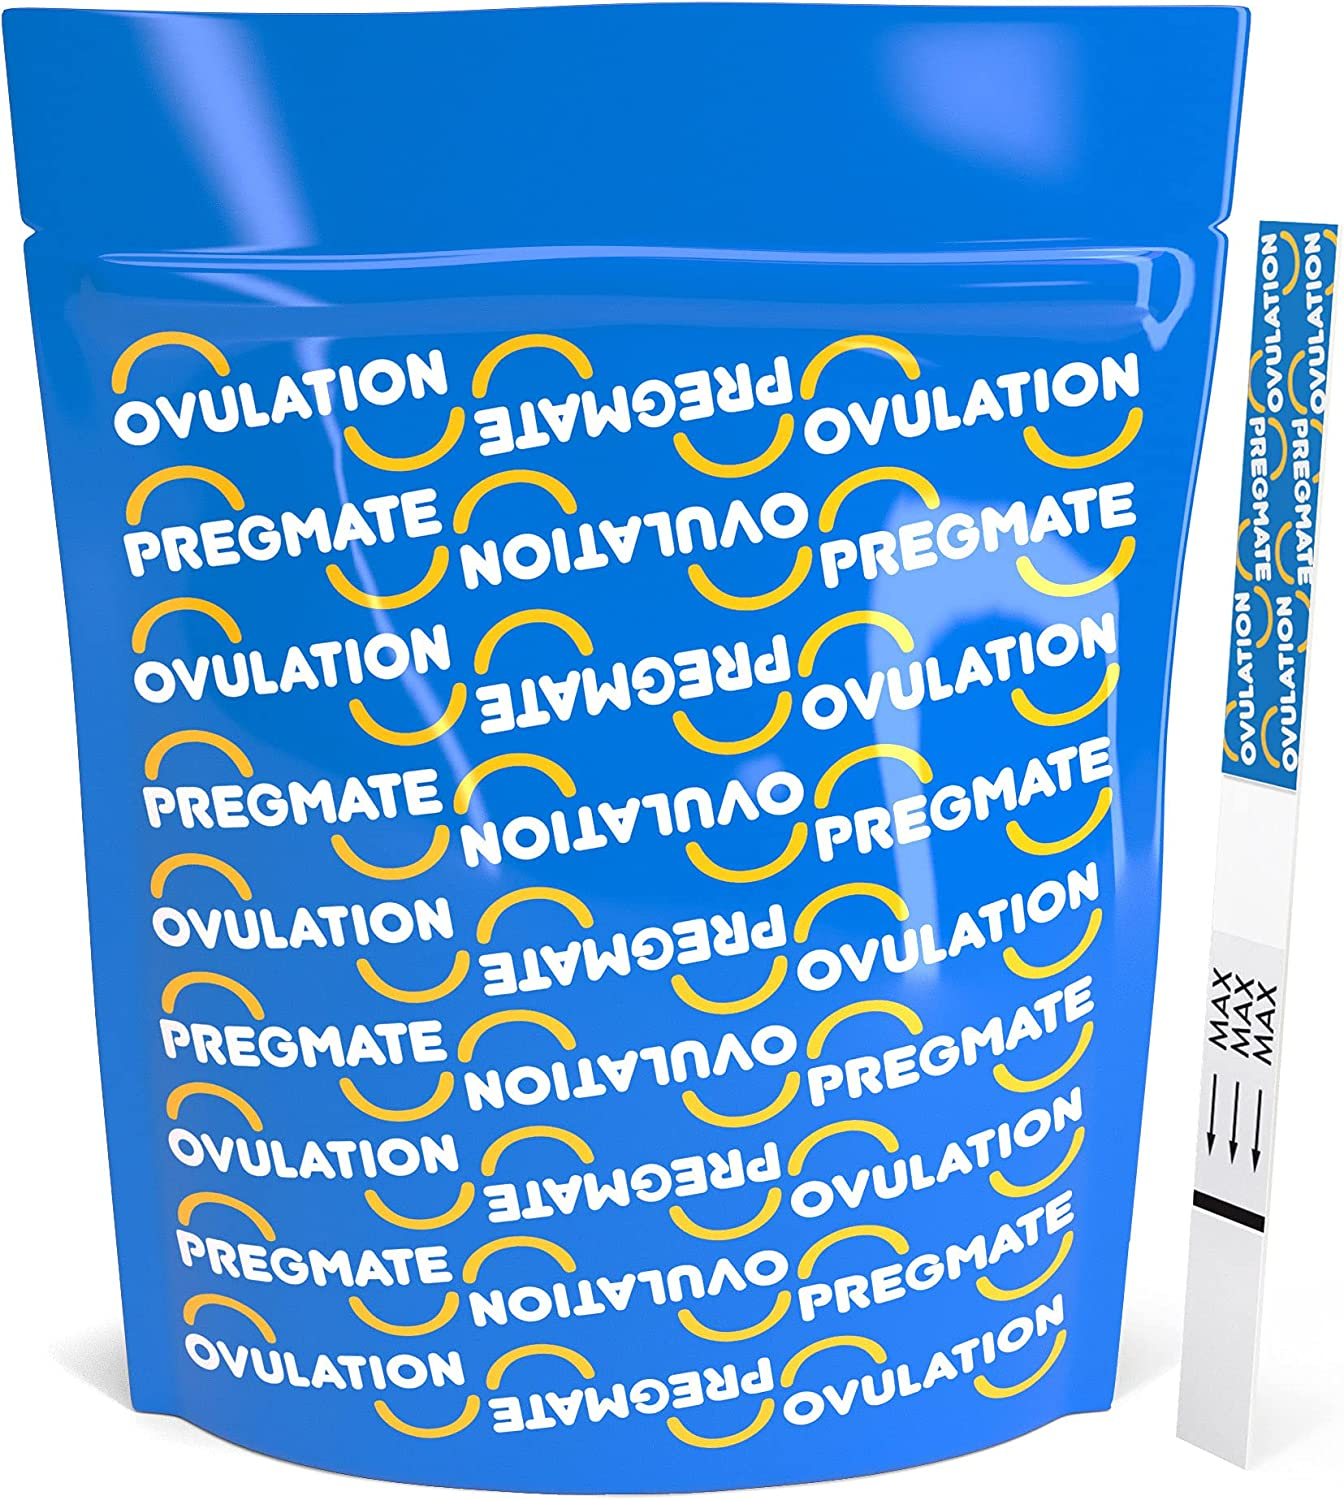 PREGMATE 20 Ovulation Test Strips Predictor Kit (20 Count)